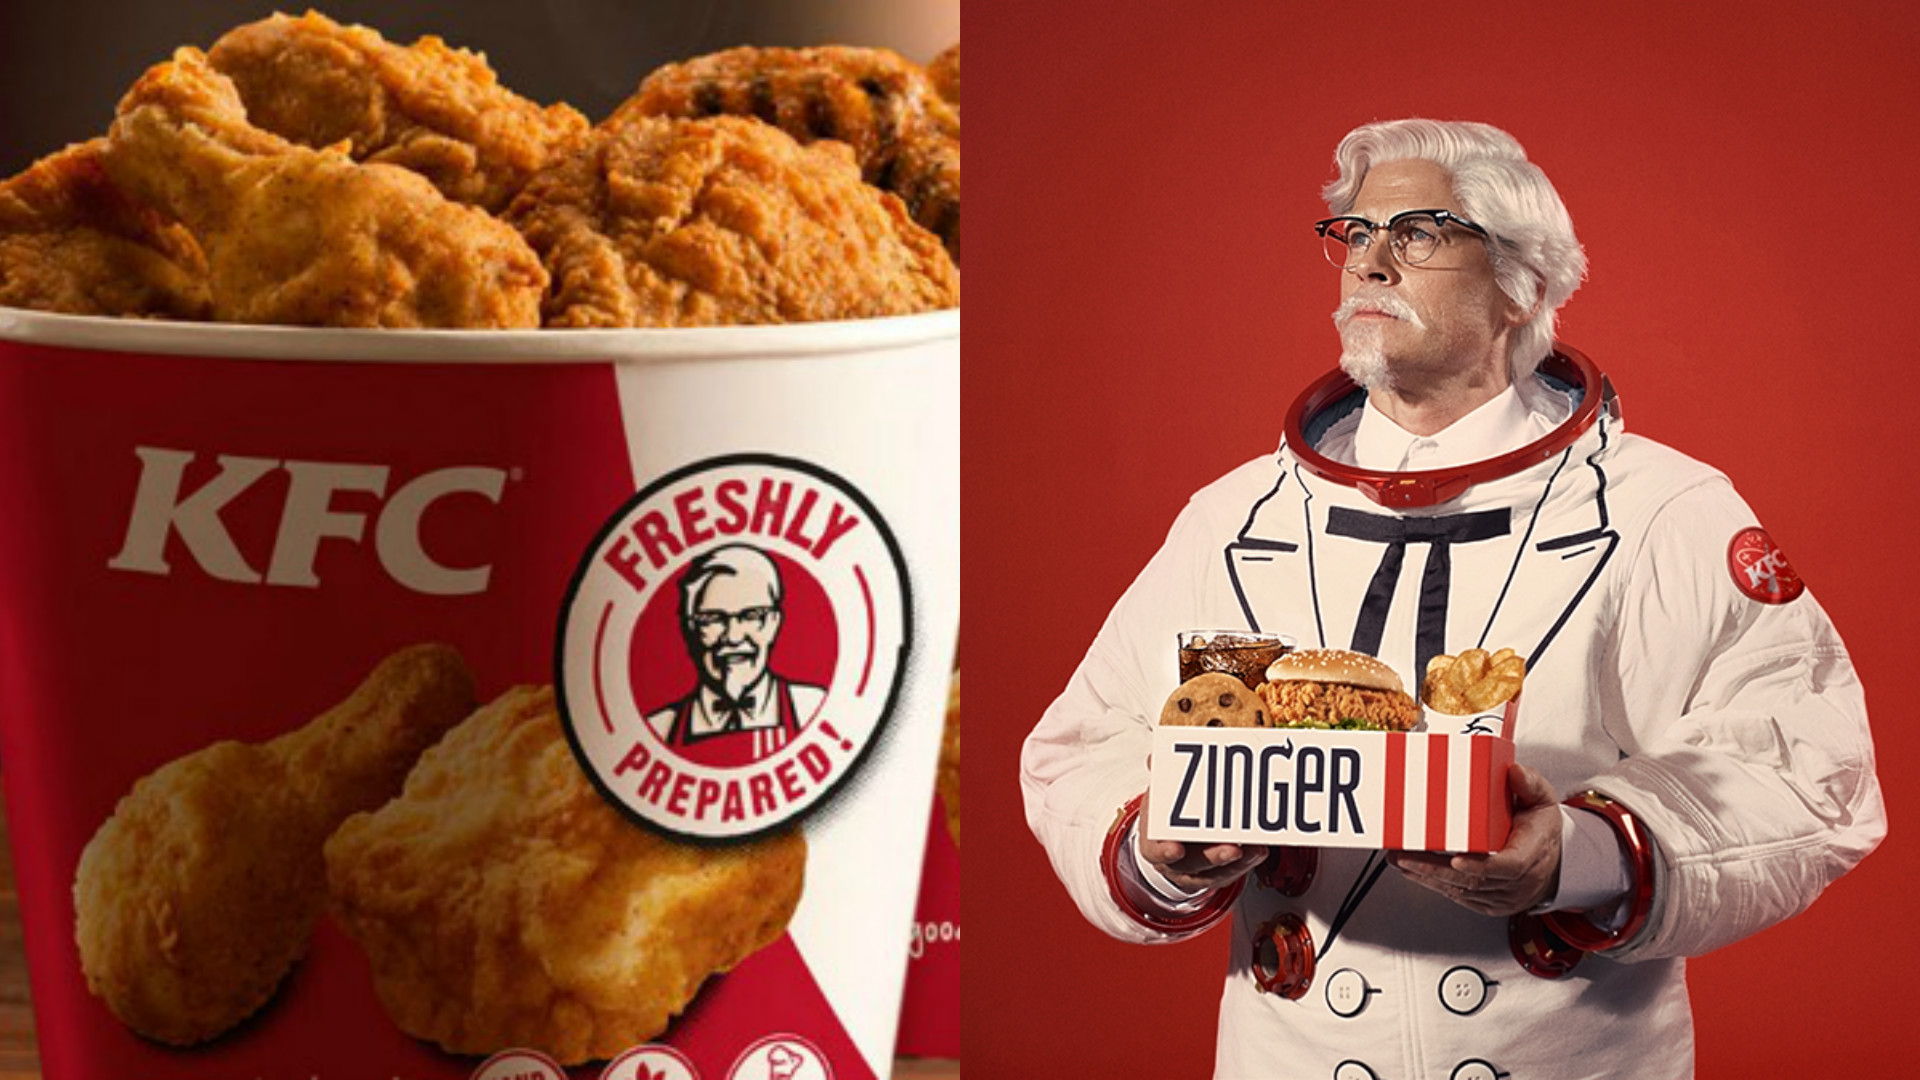 KFC is heading into space